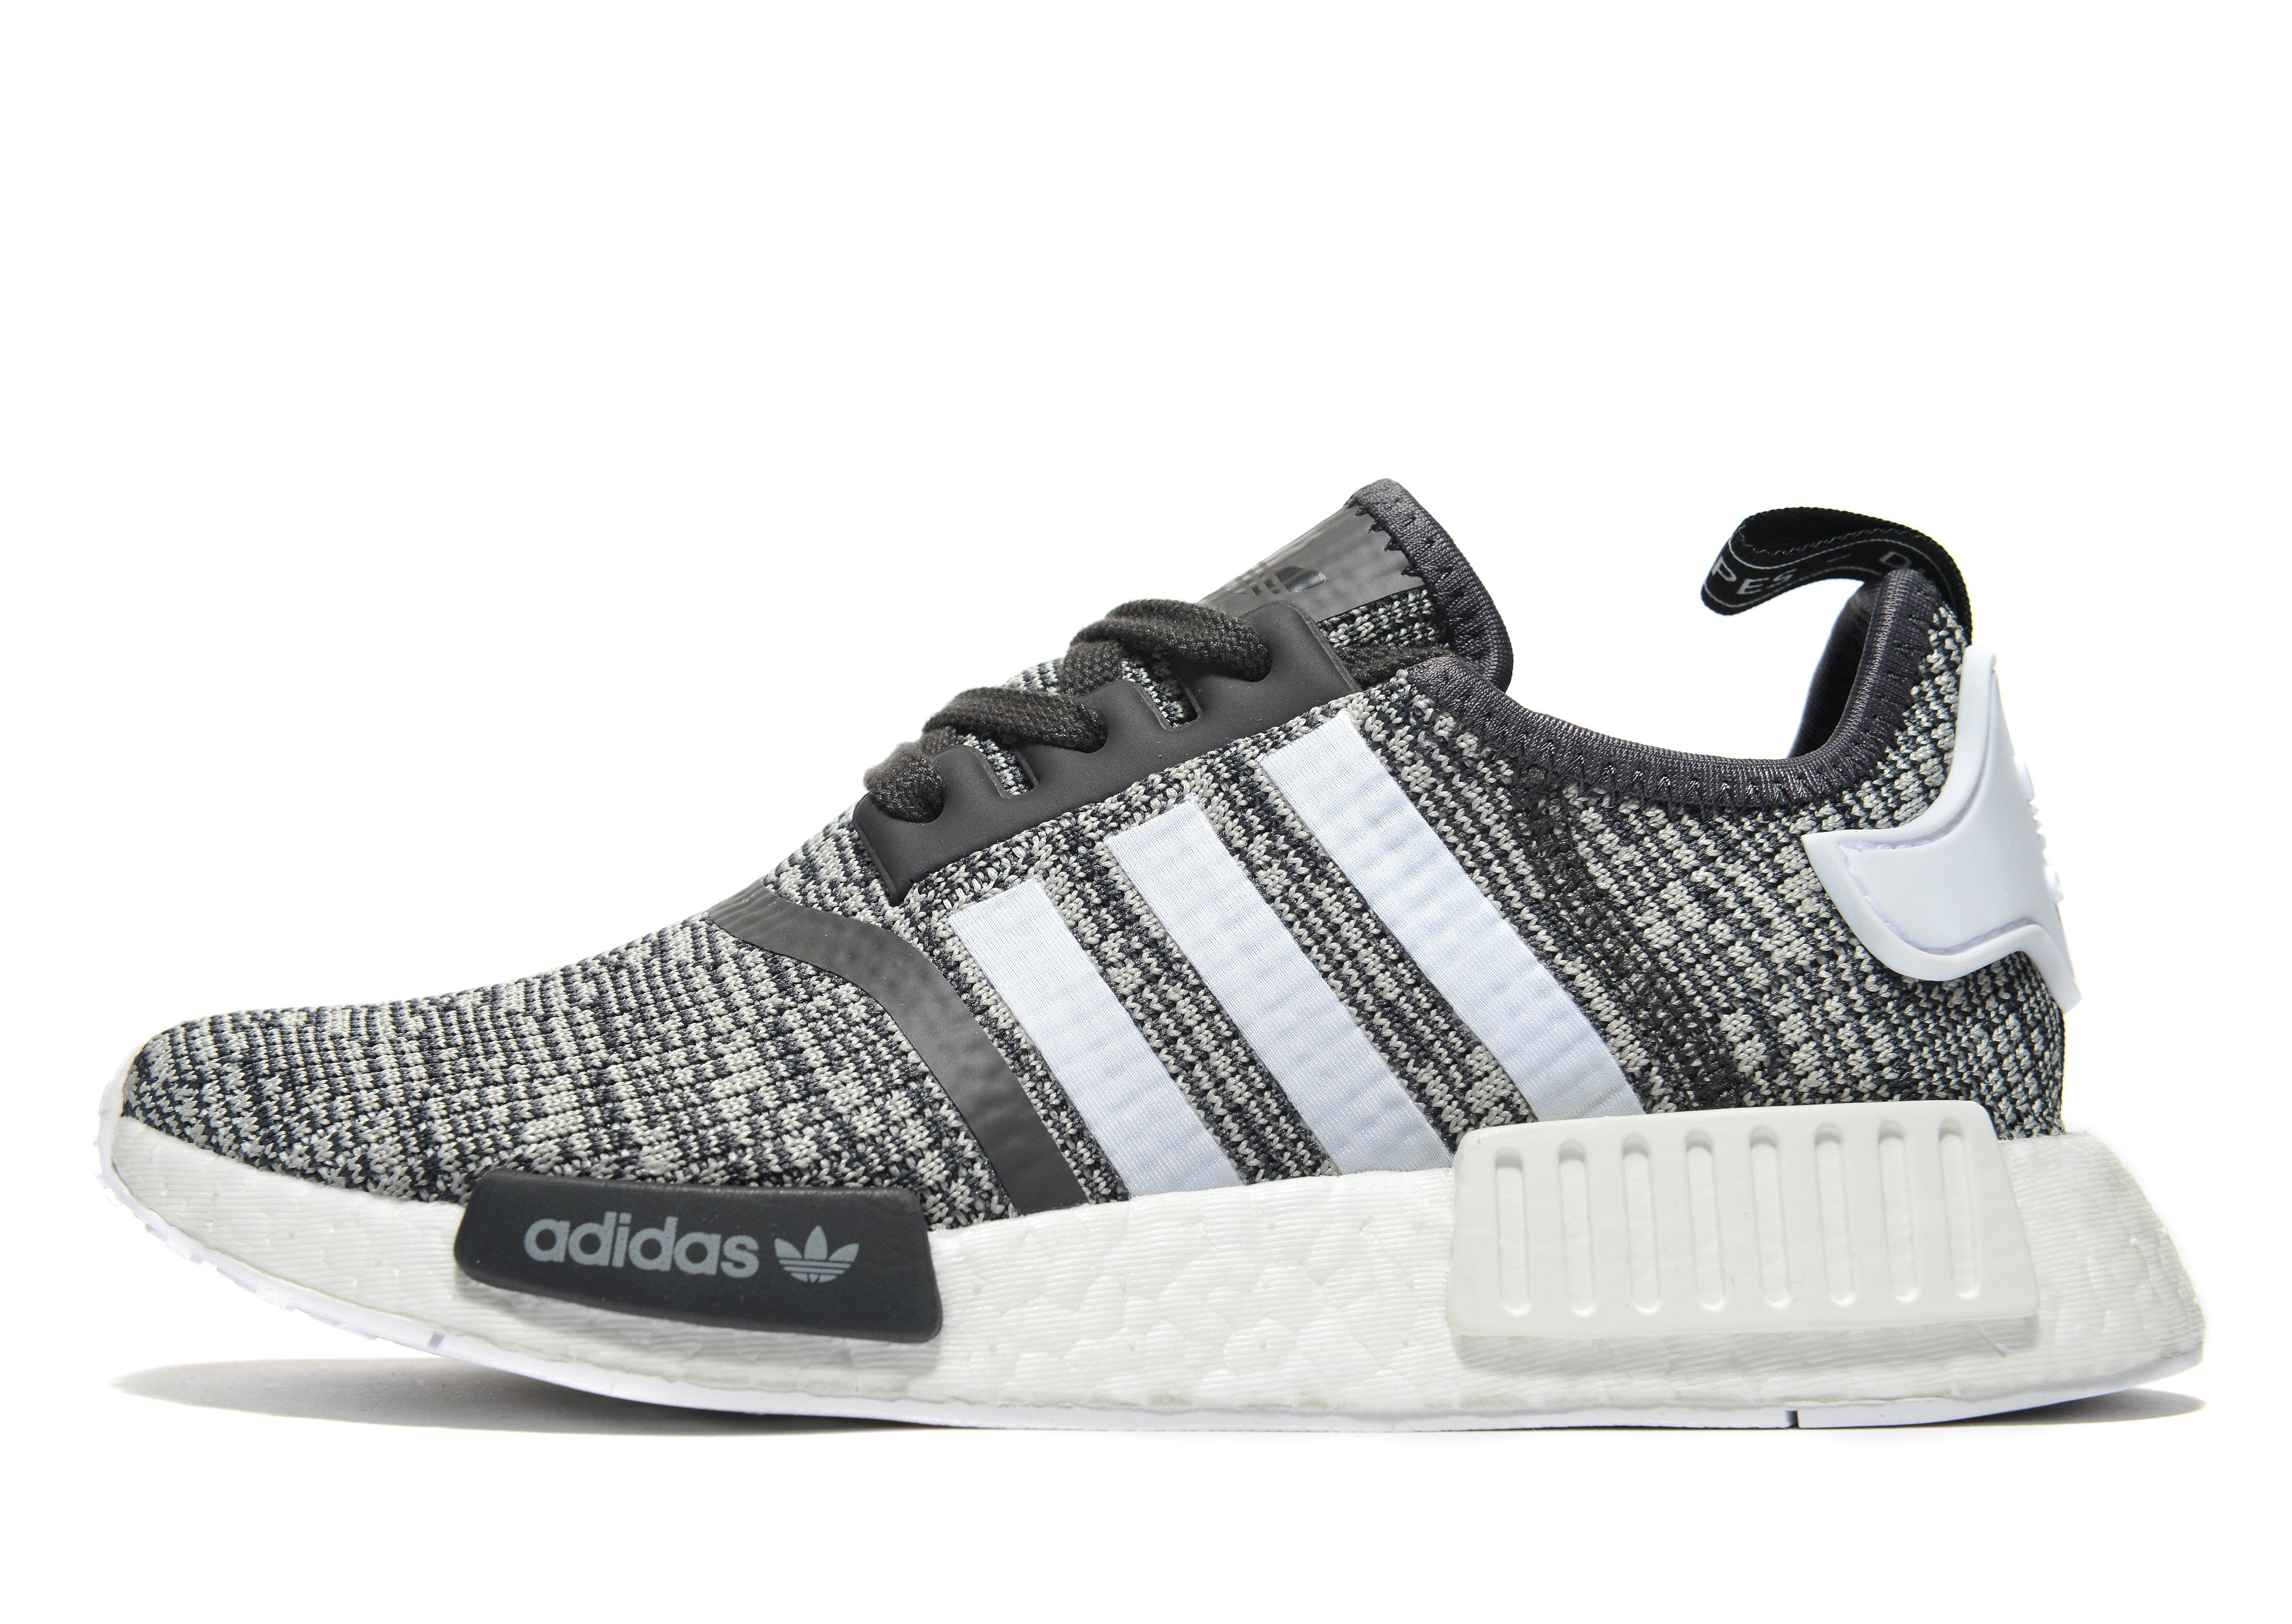 Cheap Adidas NMD XR1 Duck Camo Sneak 4 you